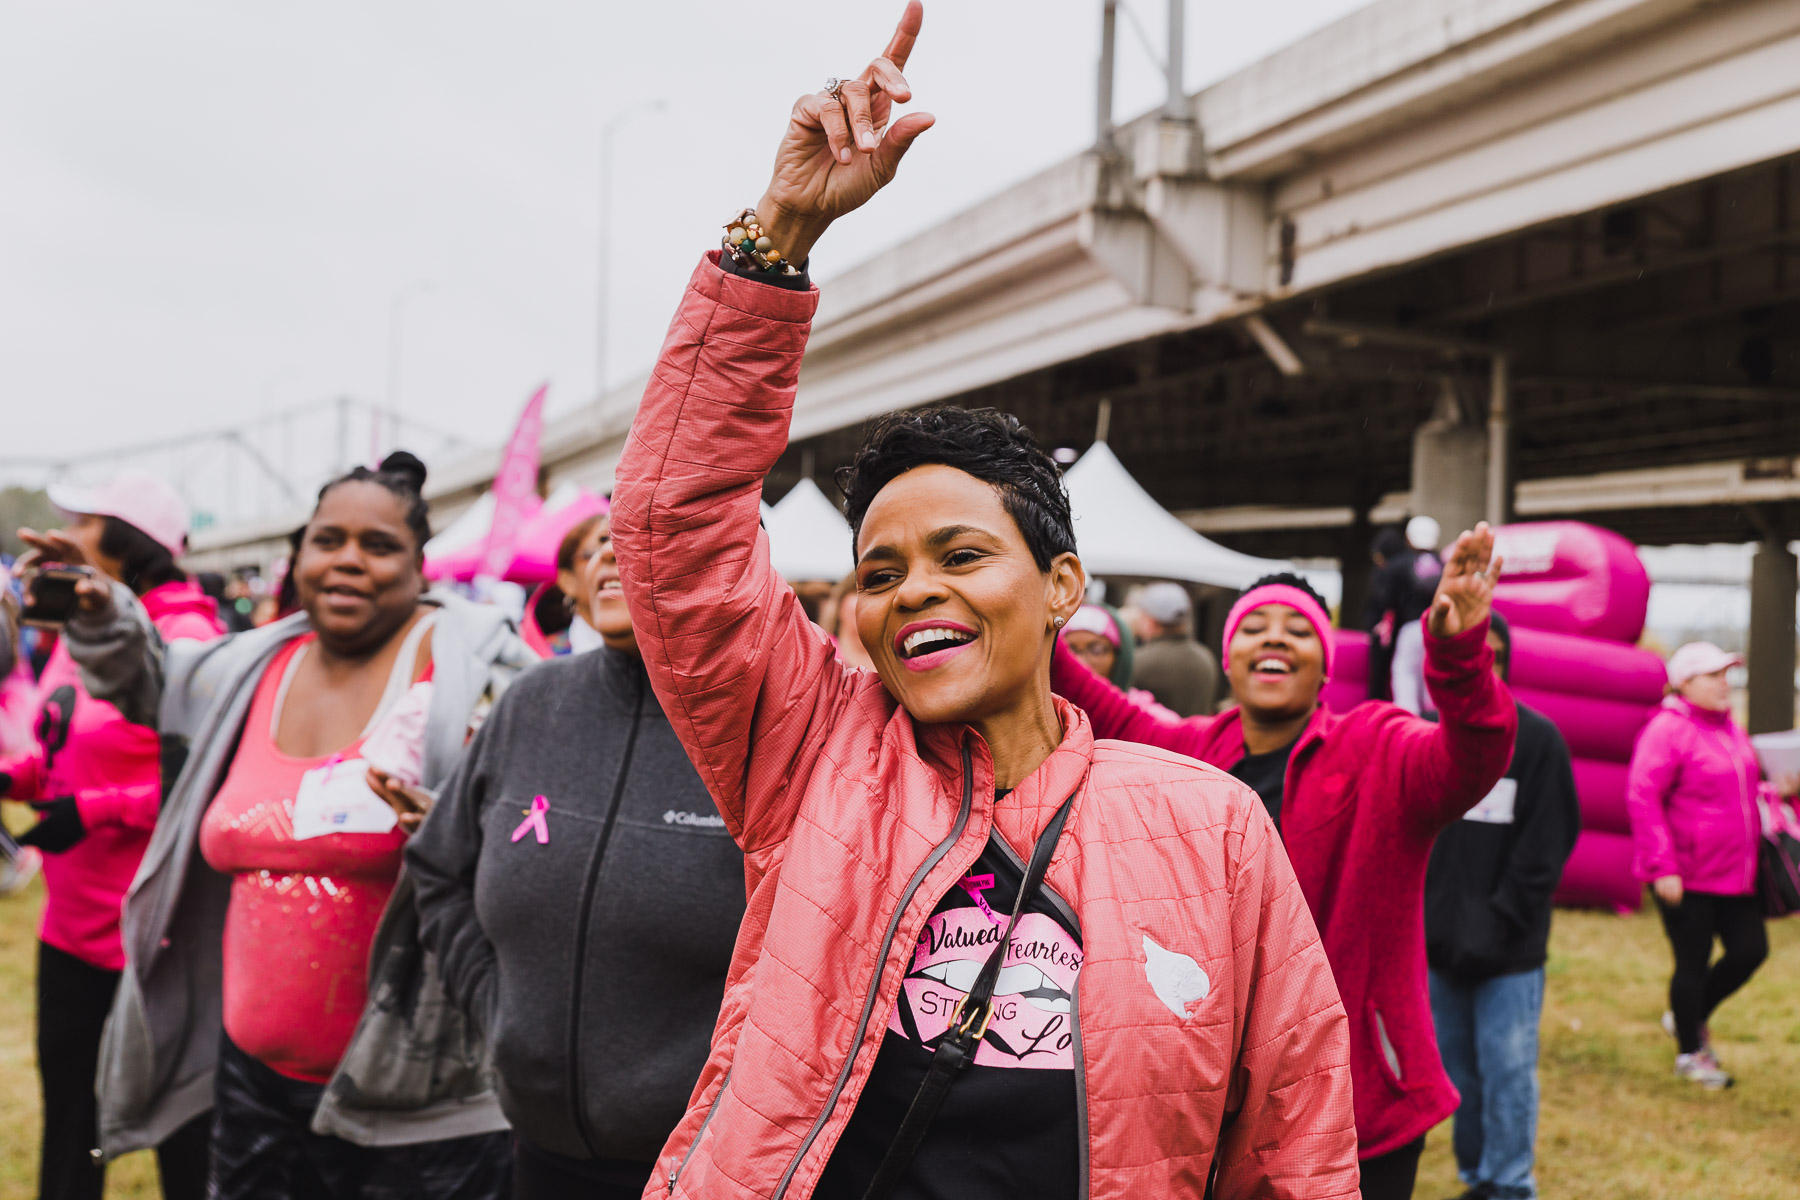 makingstridessneakpeek_lo_res-3.jpg